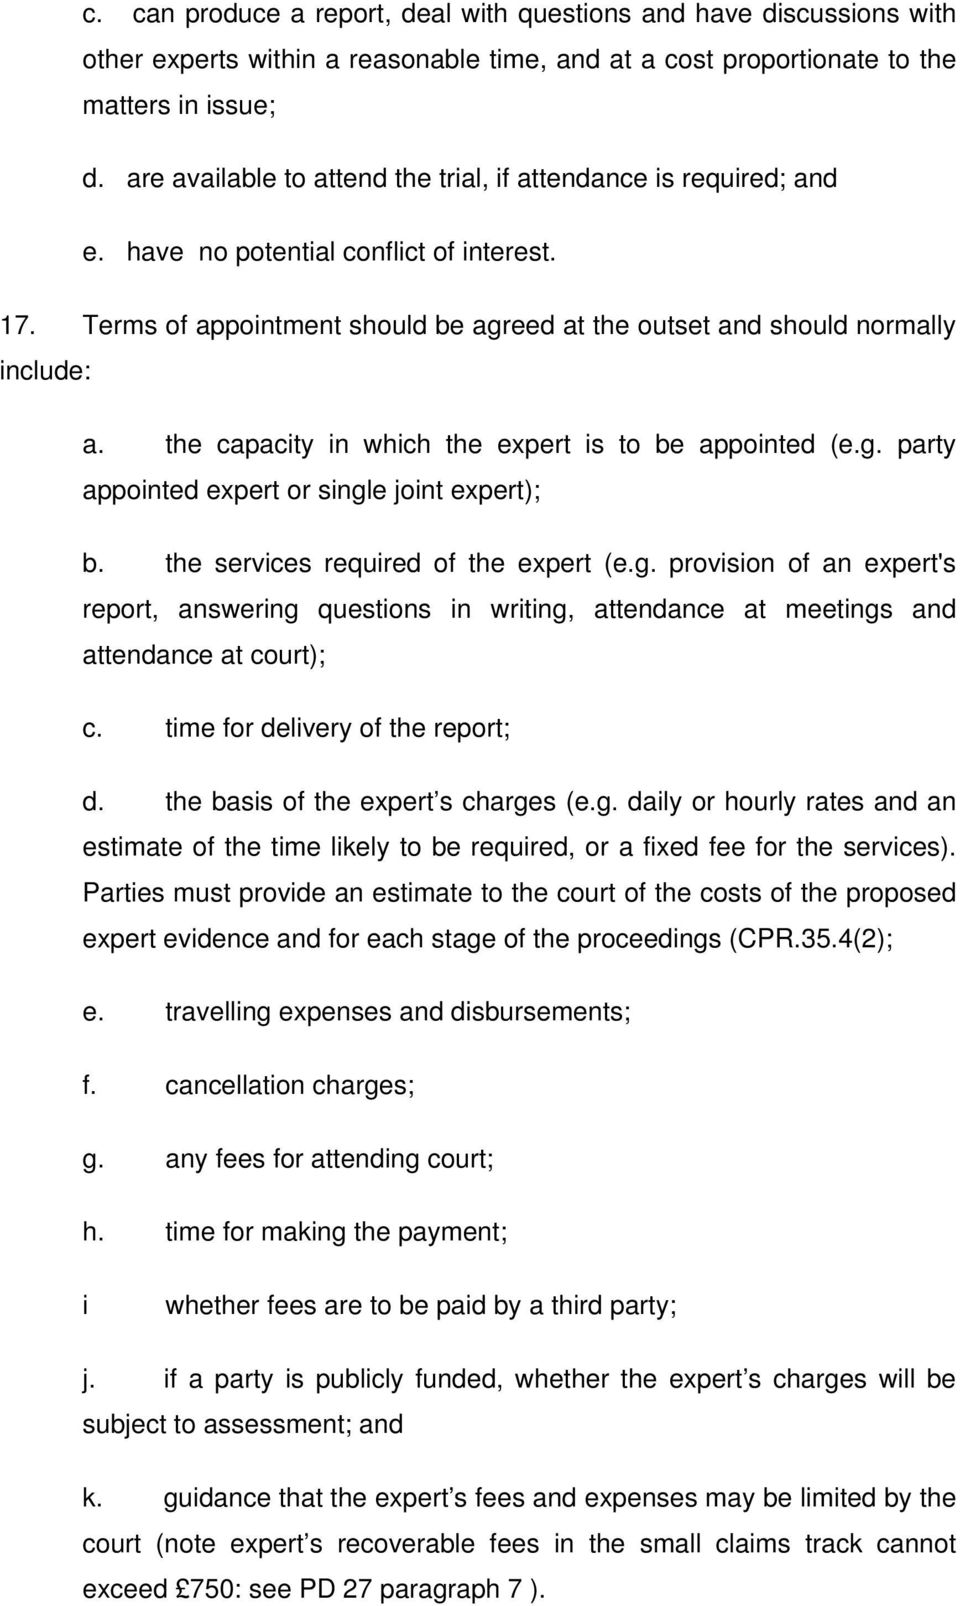 the capacity in which the expert is to be appointed (e.g. party appointed expert or single joint expert); b. the services required of the expert (e.g. provision of an expert's report, answering questions in writing, attendance at meetings and attendance at court); c.